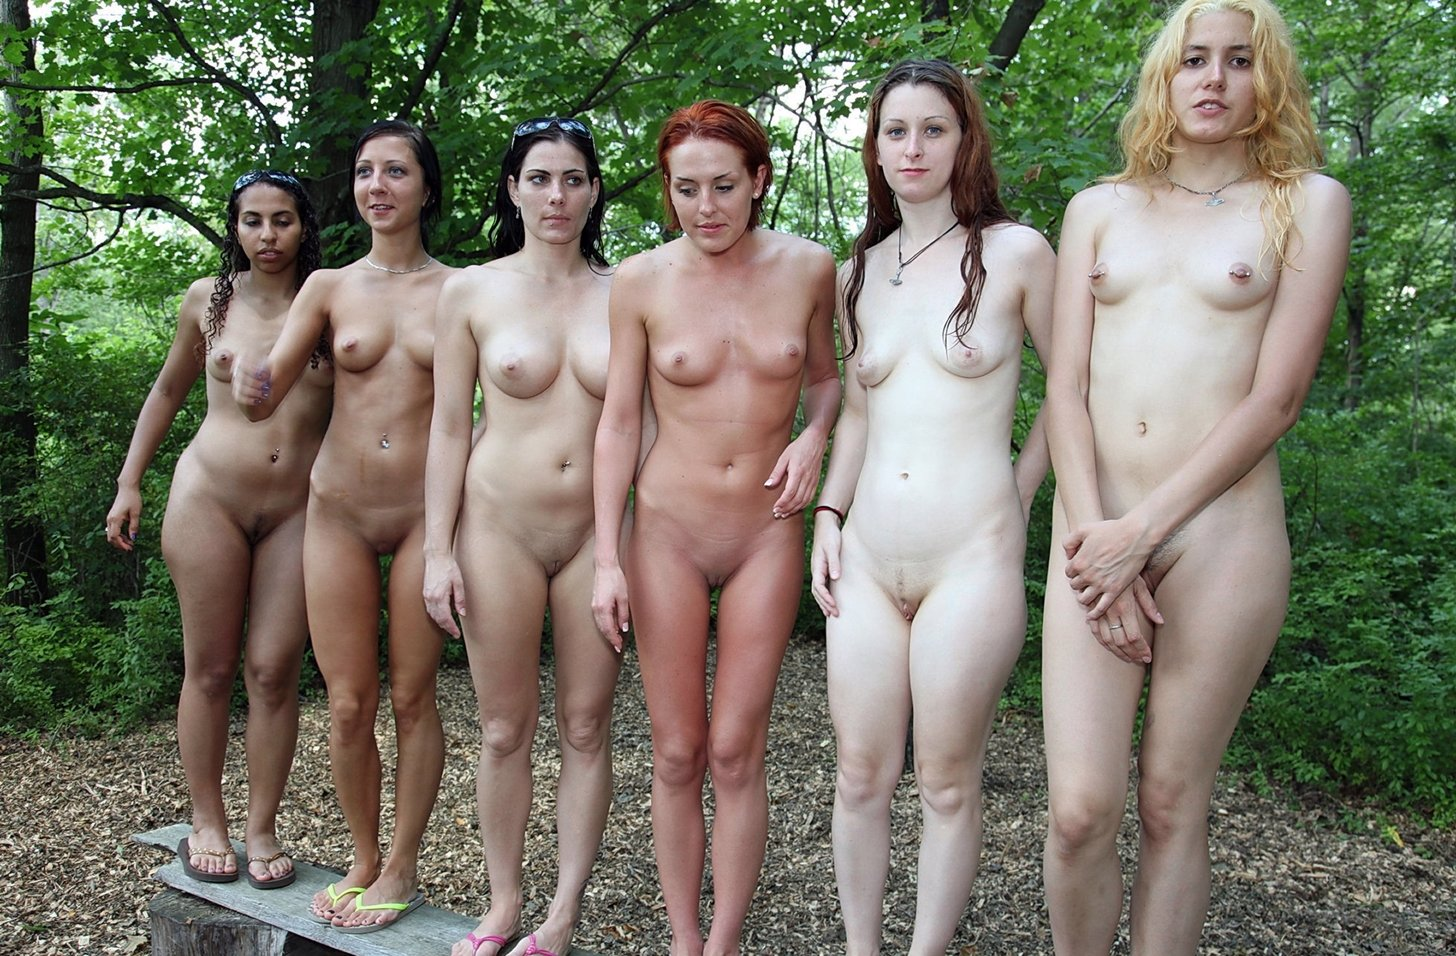 Camp europe nudist